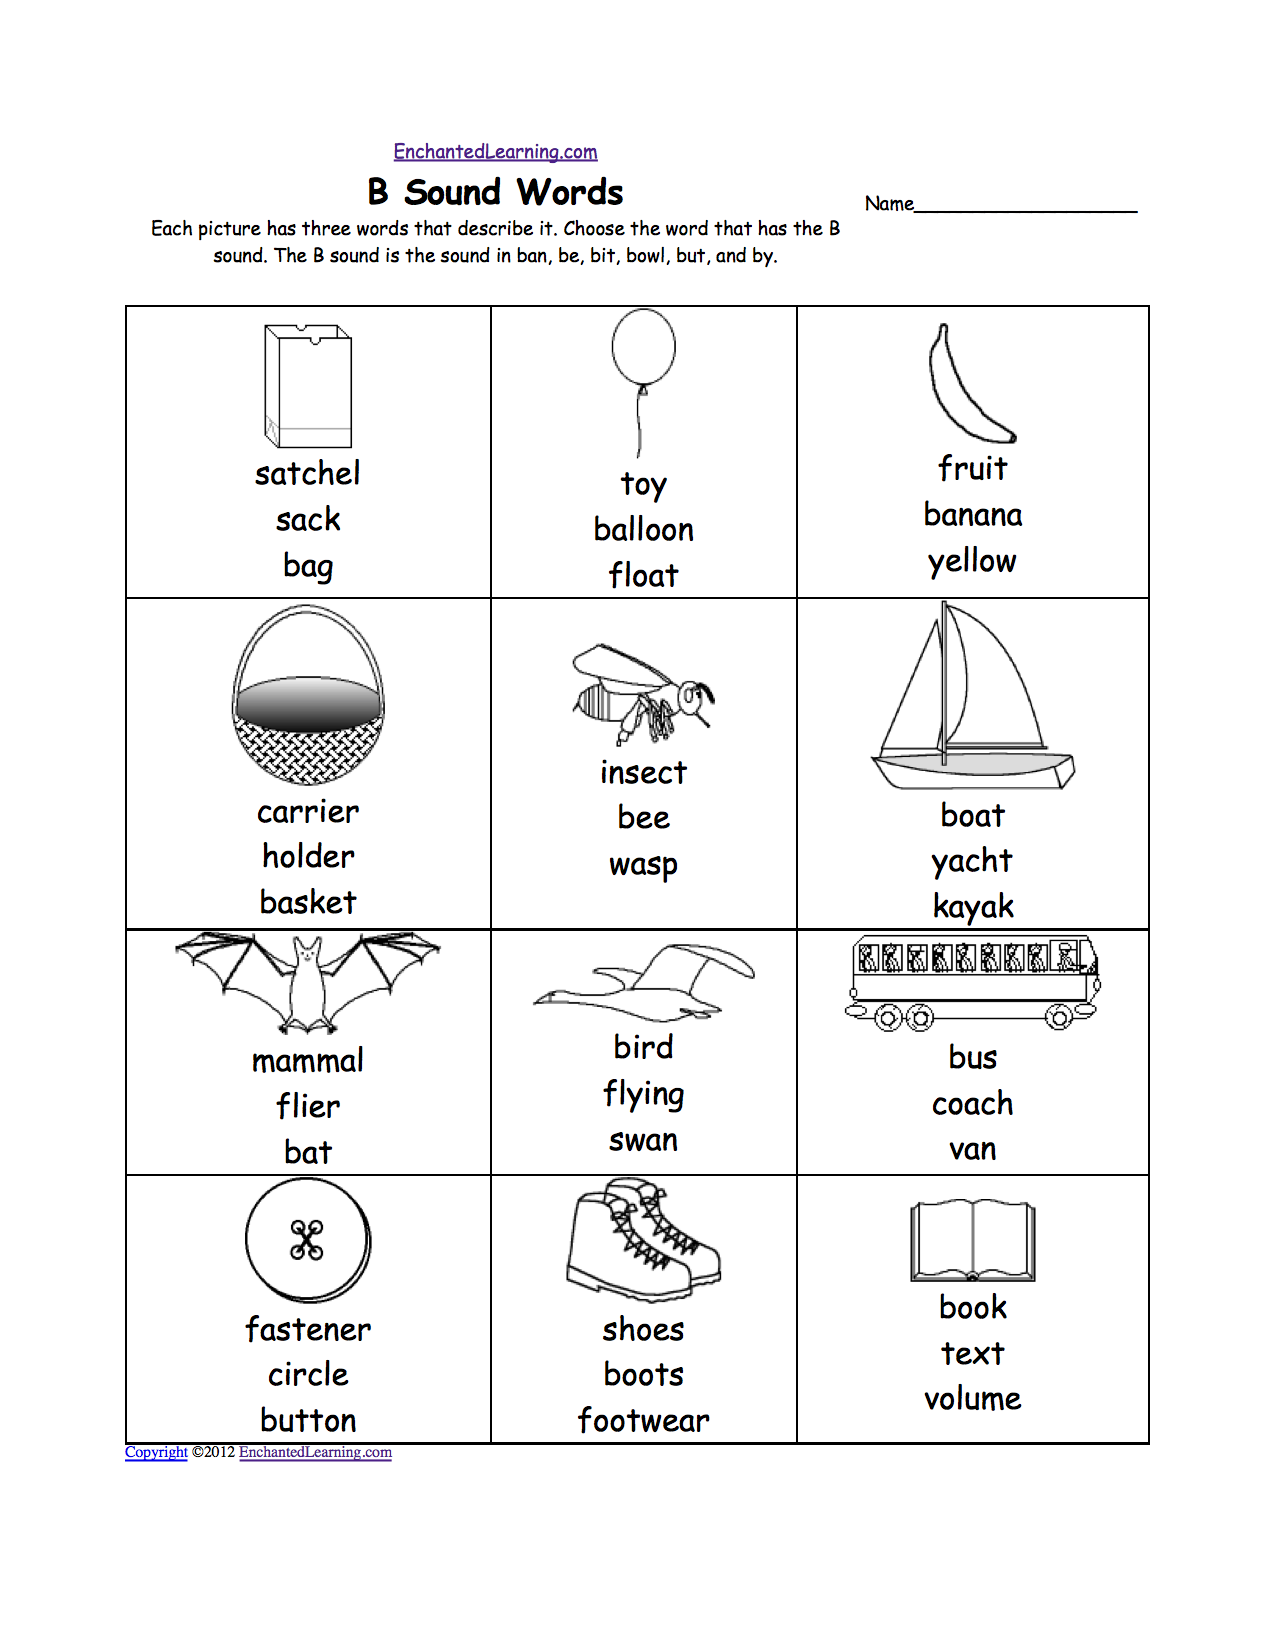 Aldiablosus  Personable Phonics Worksheets Multiple Choice Worksheets To Print  With Excellent Quotbquot Sound Phonics Worksheet Multiple Choice Each Picture Has Three Words That Describe It Choose The Word That Has A Quotbquot Sound The Quotbquot Sound Is The Sound  With Attractive Coin Counting Worksheet Also Money Budget Worksheet In Addition First Grade Math Worksheets Word Problems And Kindergarten Activity Worksheets As Well As Lcm And Gcf Word Problems Worksheet Additionally The Tell Tale Heart Worksheets From Enchantedlearningcom With Aldiablosus  Excellent Phonics Worksheets Multiple Choice Worksheets To Print  With Attractive Quotbquot Sound Phonics Worksheet Multiple Choice Each Picture Has Three Words That Describe It Choose The Word That Has A Quotbquot Sound The Quotbquot Sound Is The Sound  And Personable Coin Counting Worksheet Also Money Budget Worksheet In Addition First Grade Math Worksheets Word Problems From Enchantedlearningcom